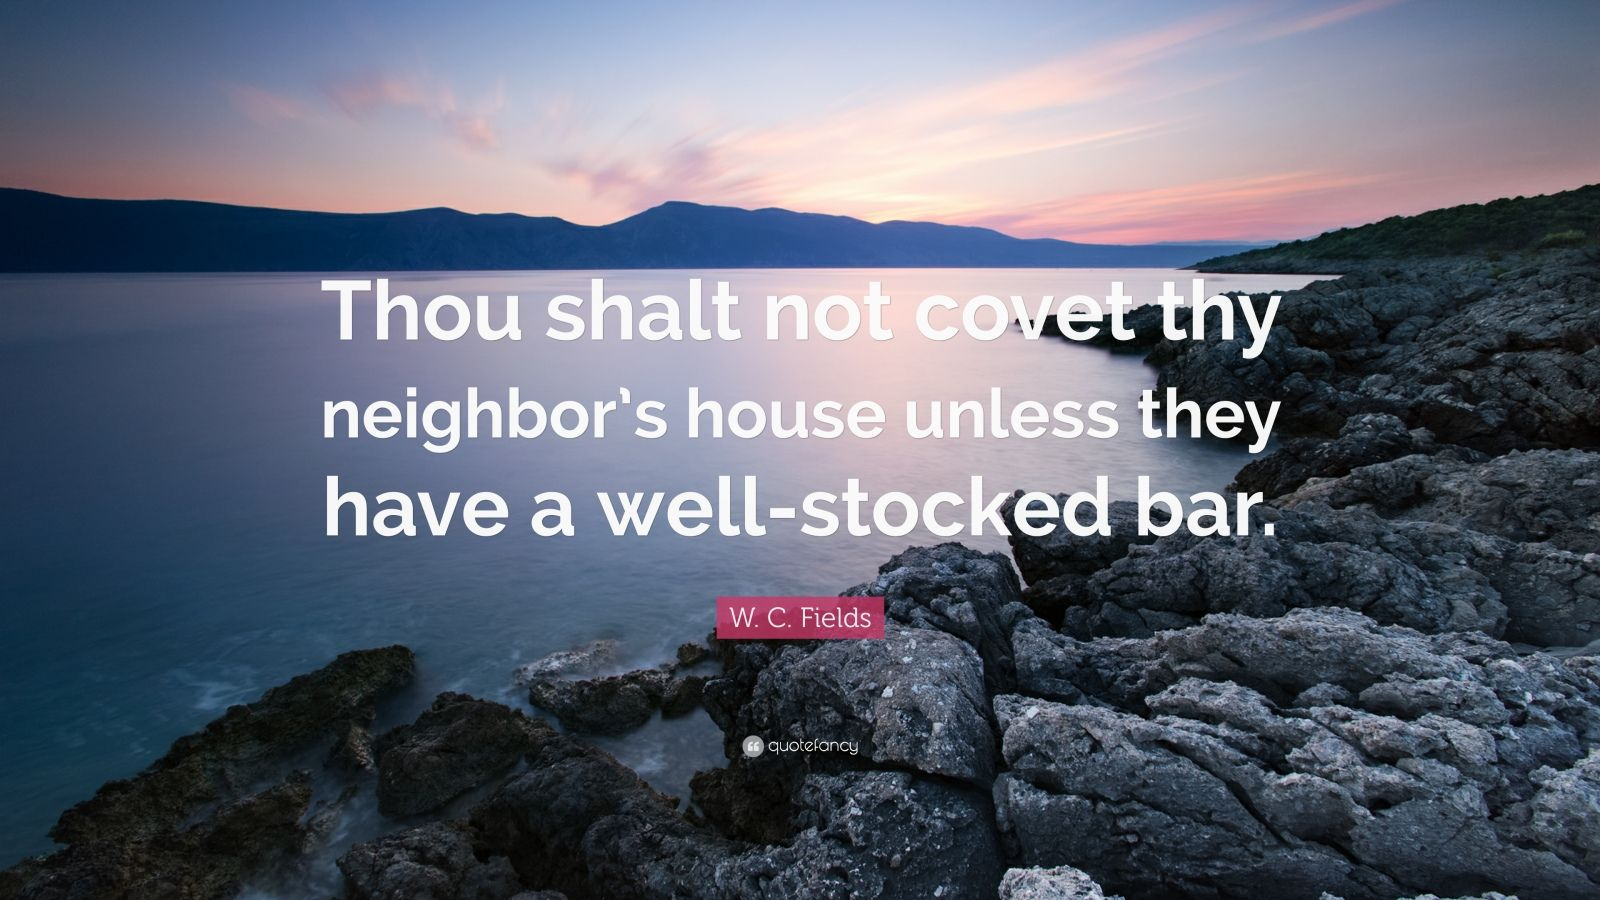 """W. C. Fields Quote: """"Thou shalt not covet thy neighbor's house unless they have a well-stocked bar."""""""